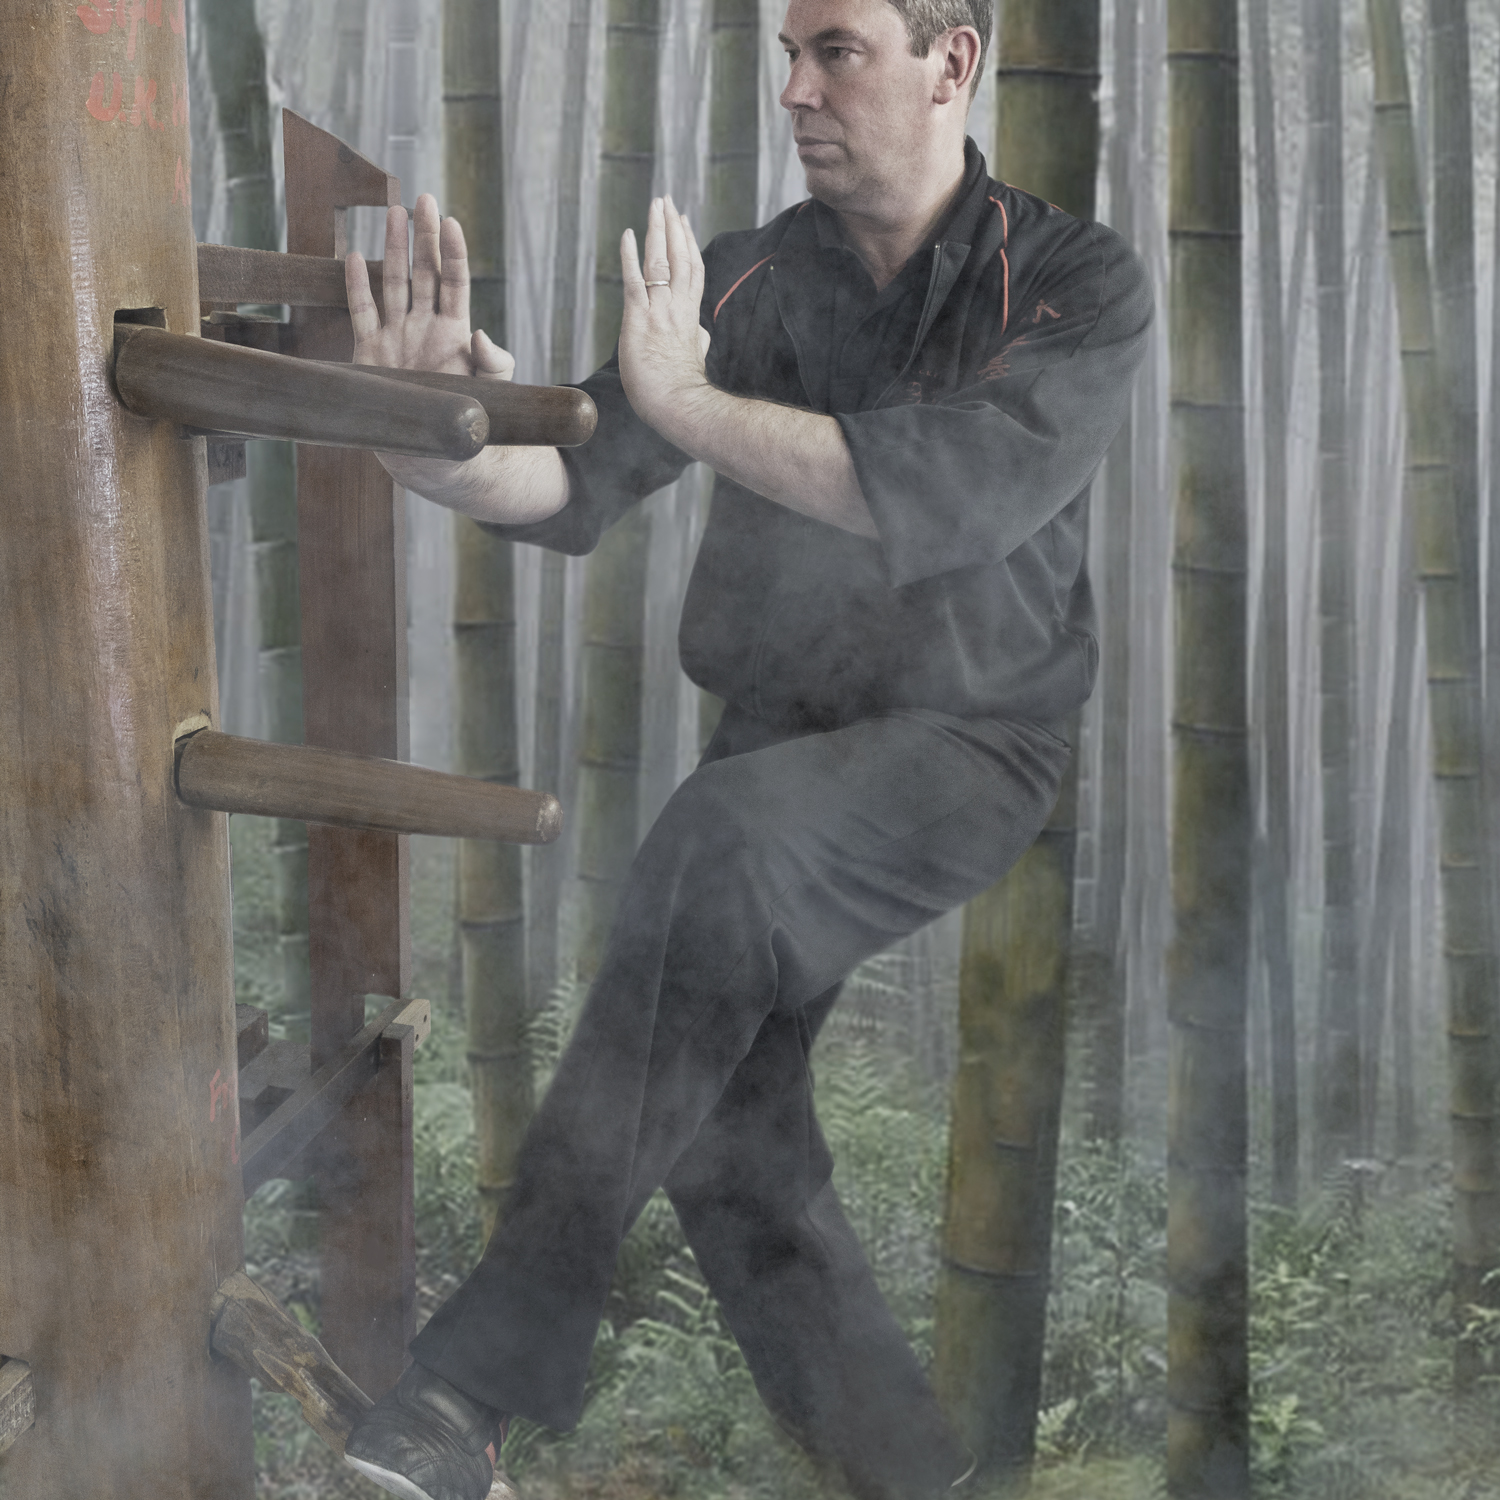 You are currently viewing Wing Chun Wooden Dummy MasterClass